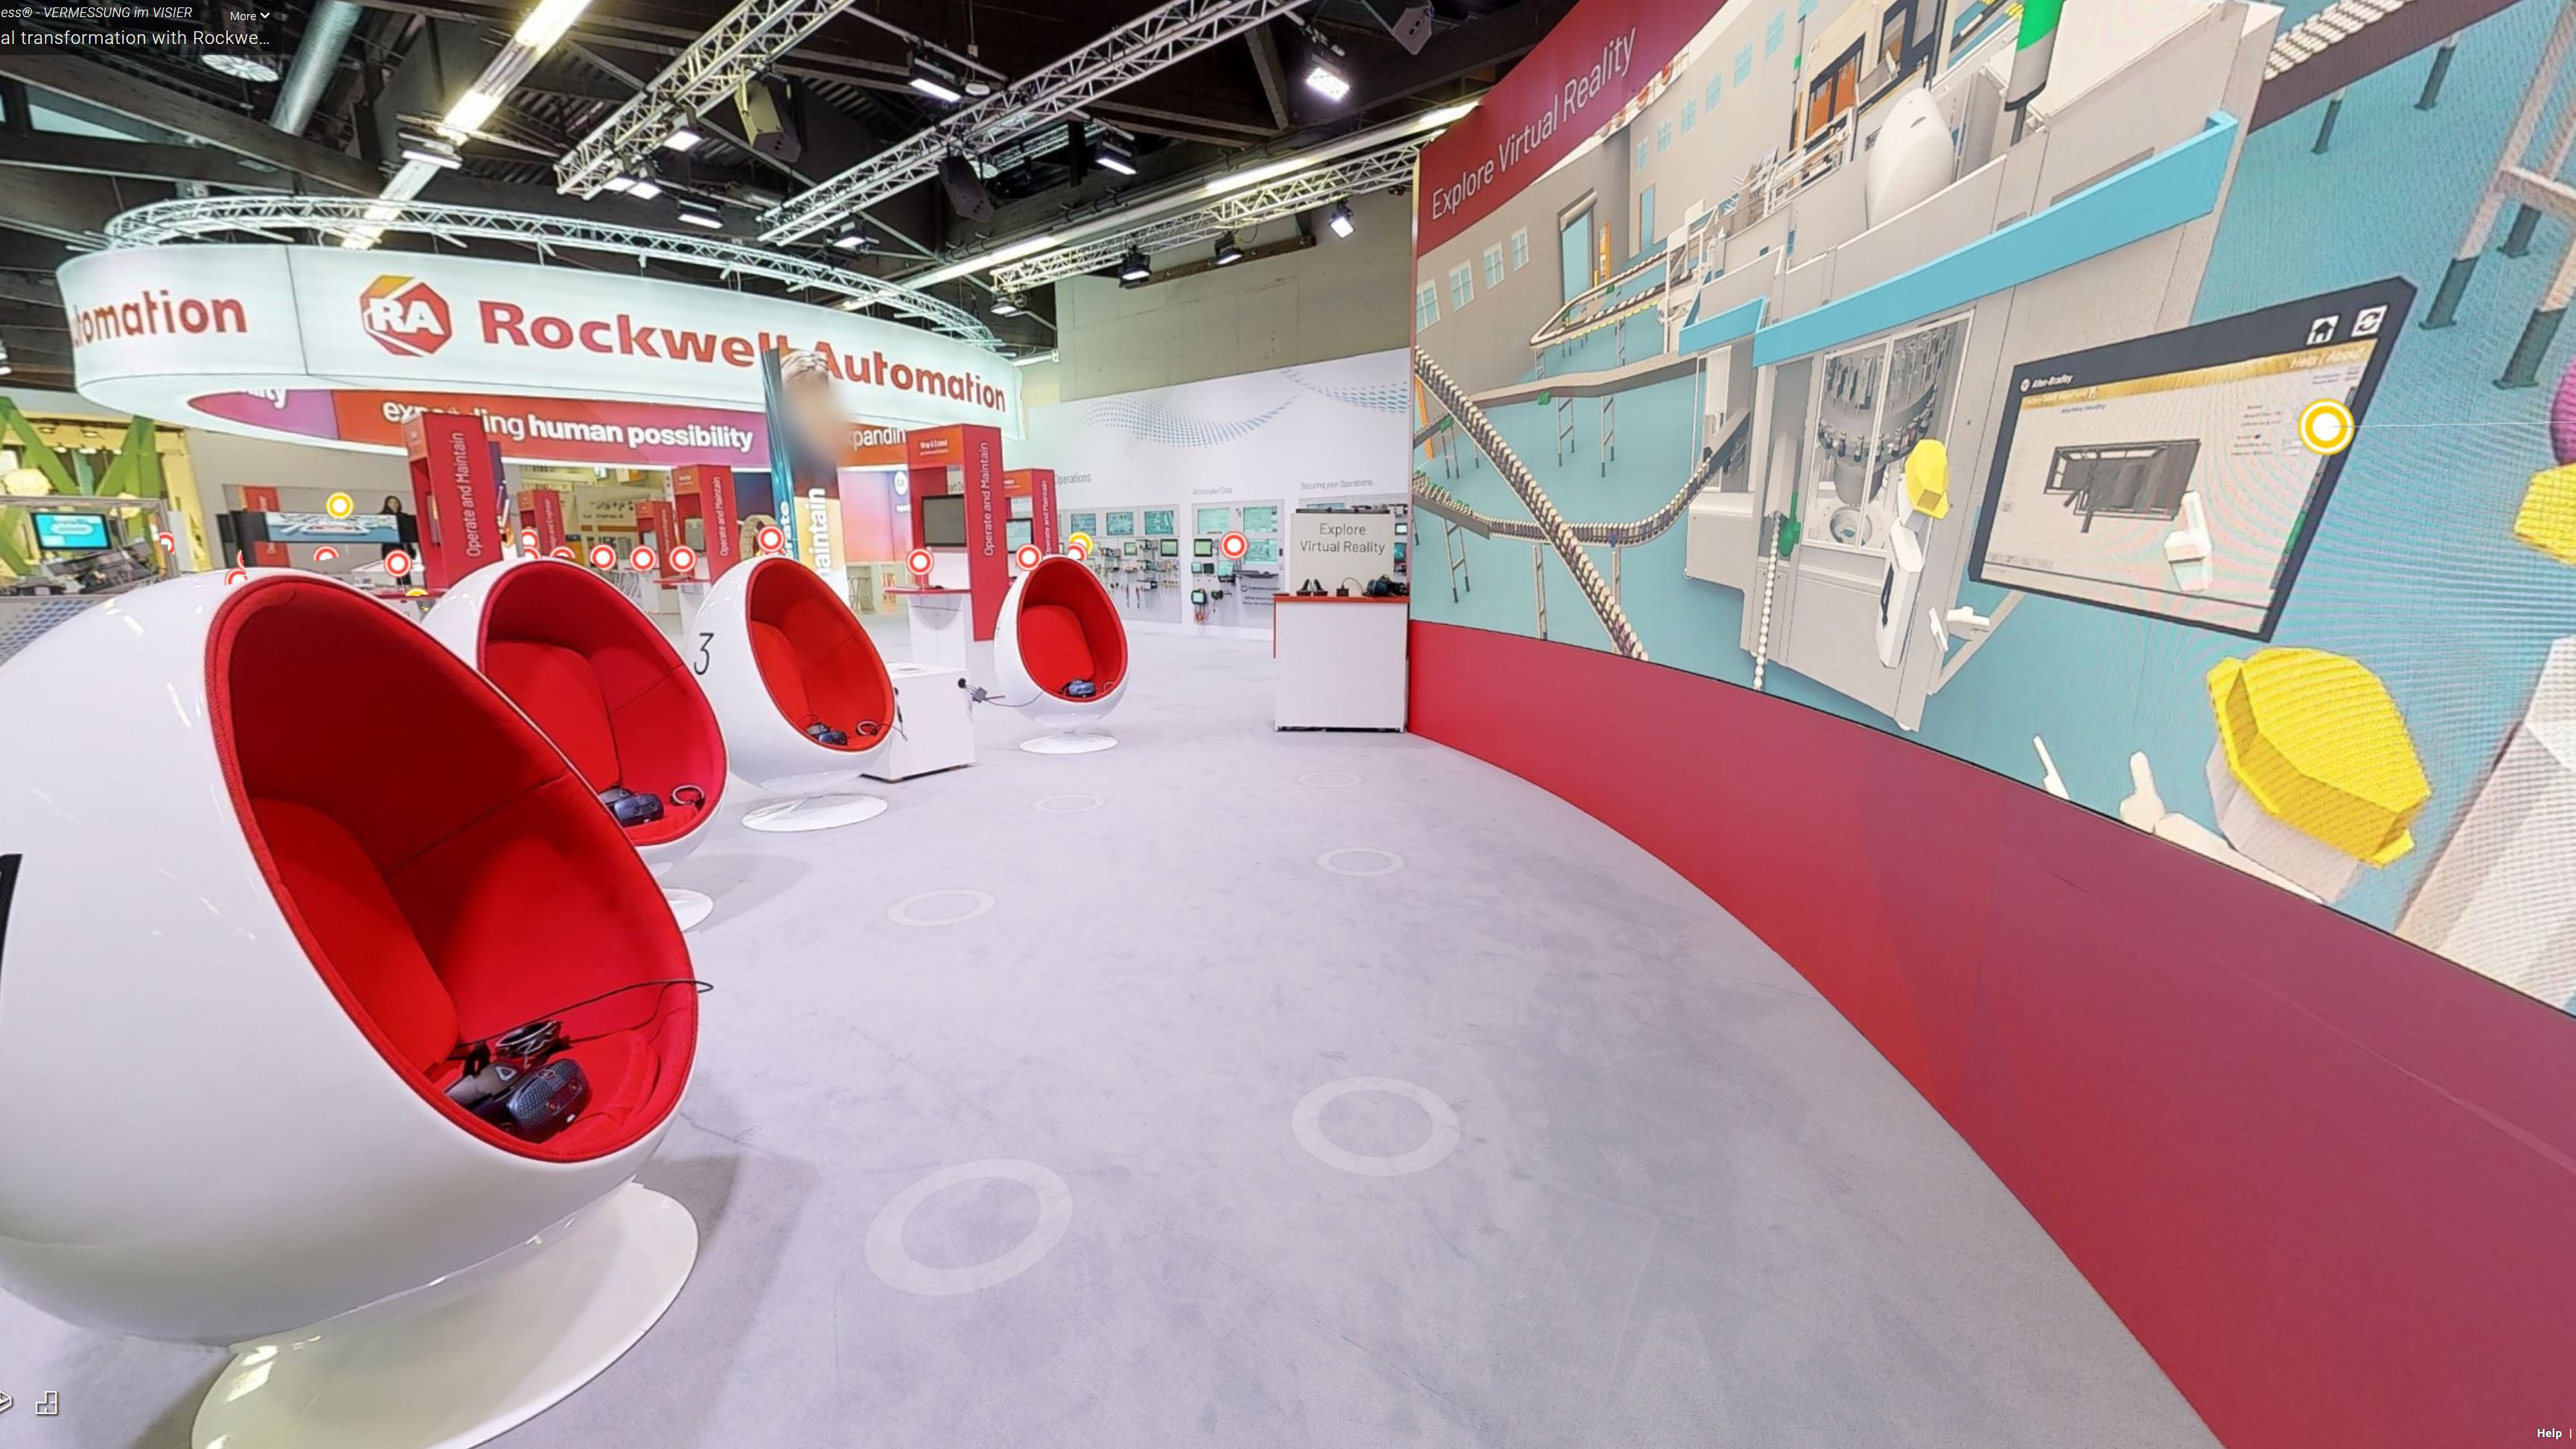 Take a 360° virtual tour of our exhibition booth